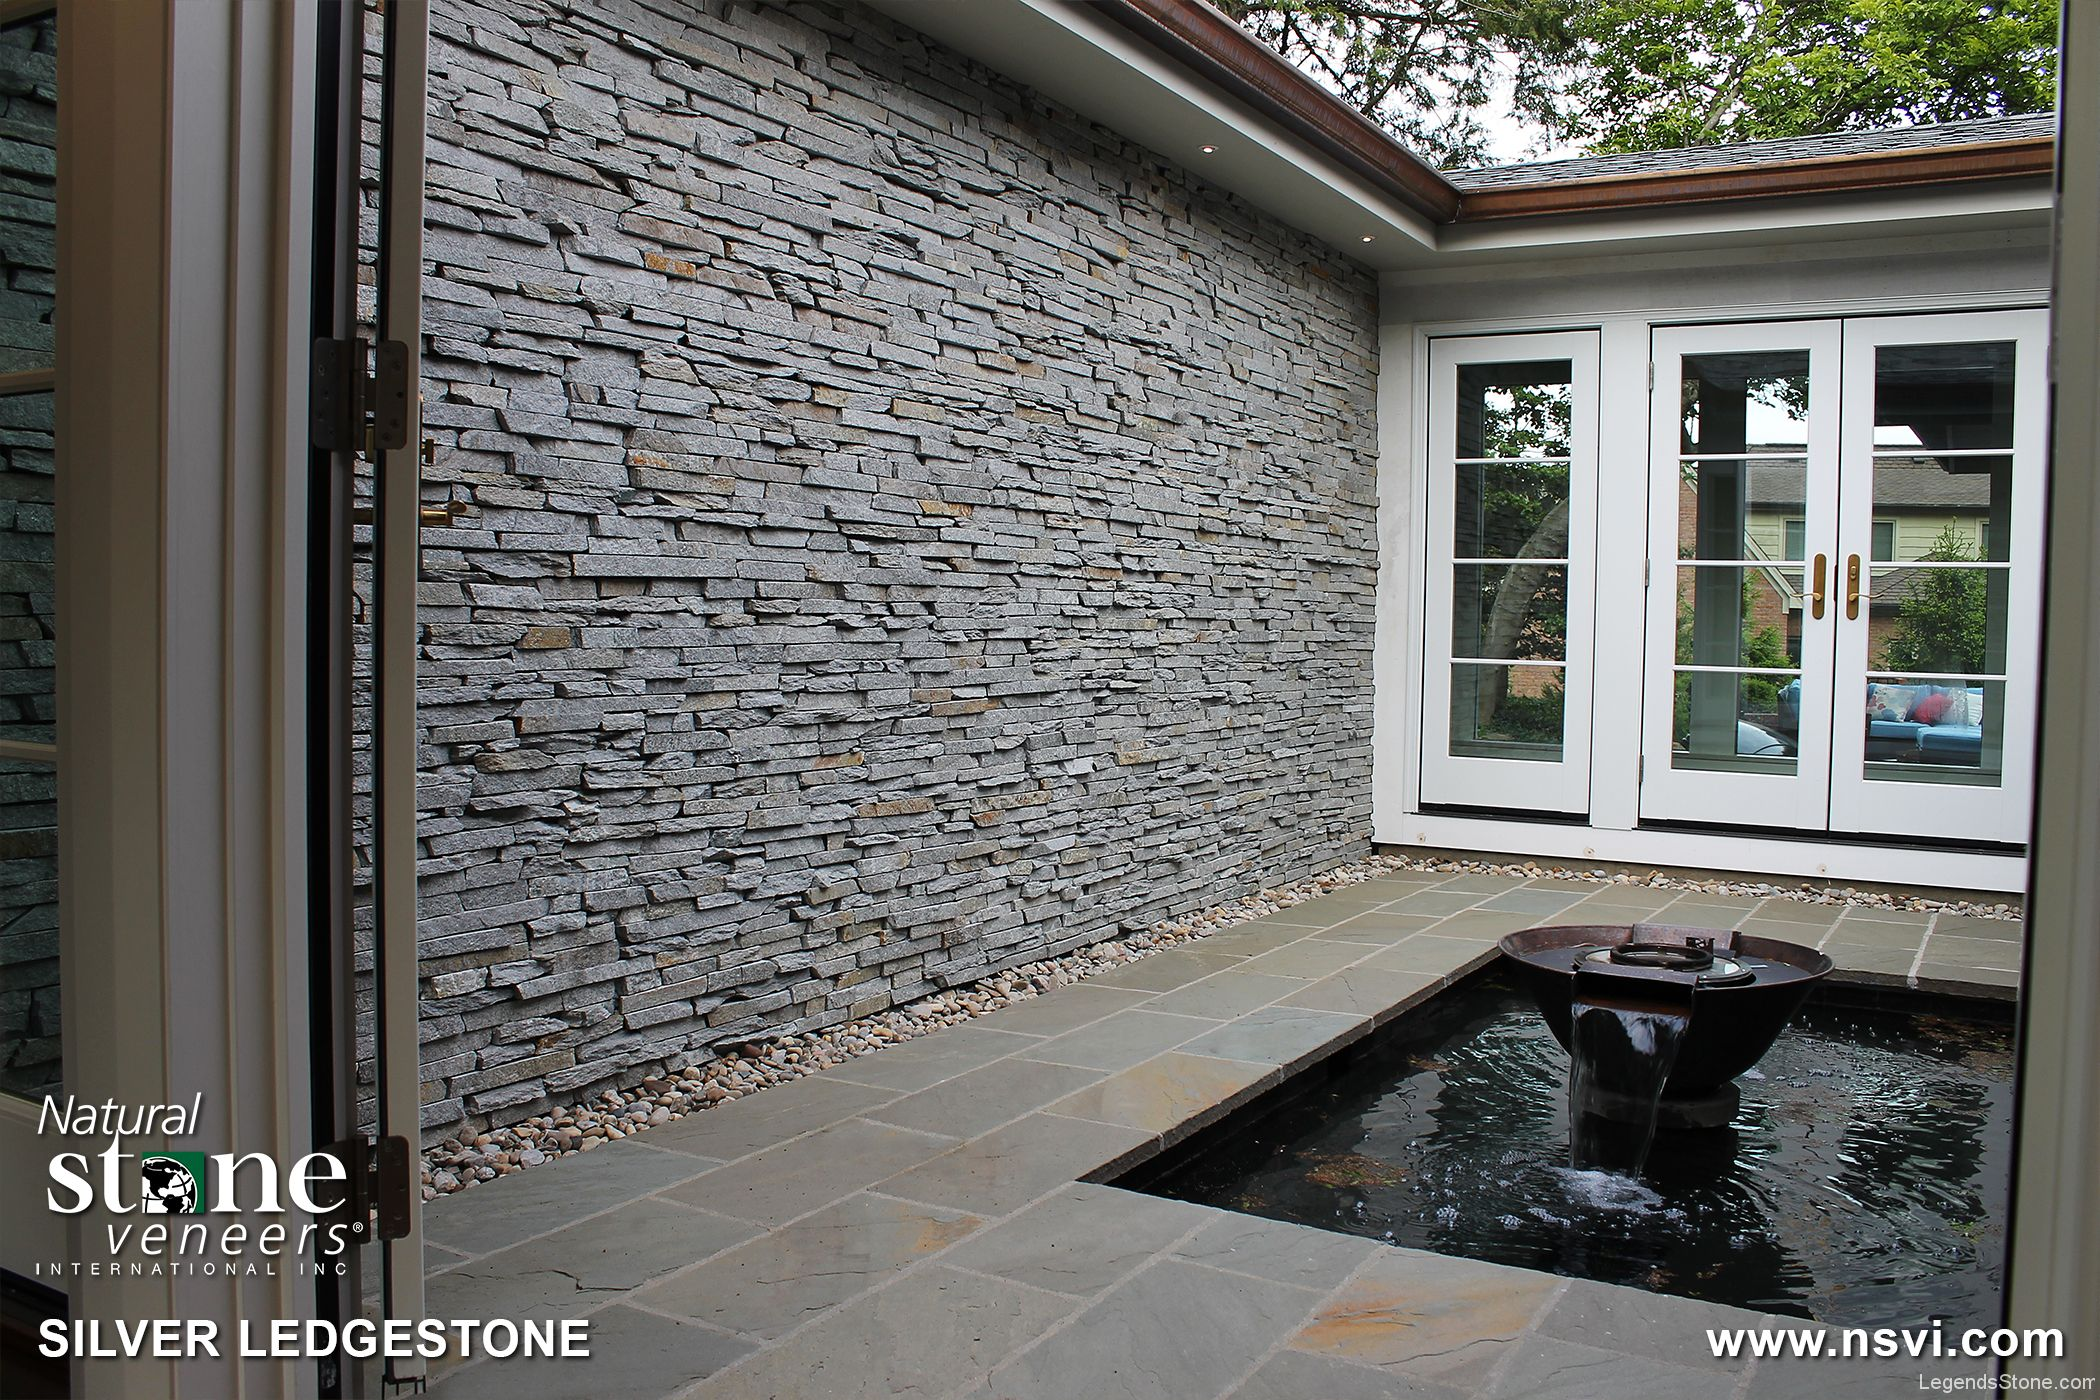 Silver Ledgestone | Legends Stone | Natural Stone